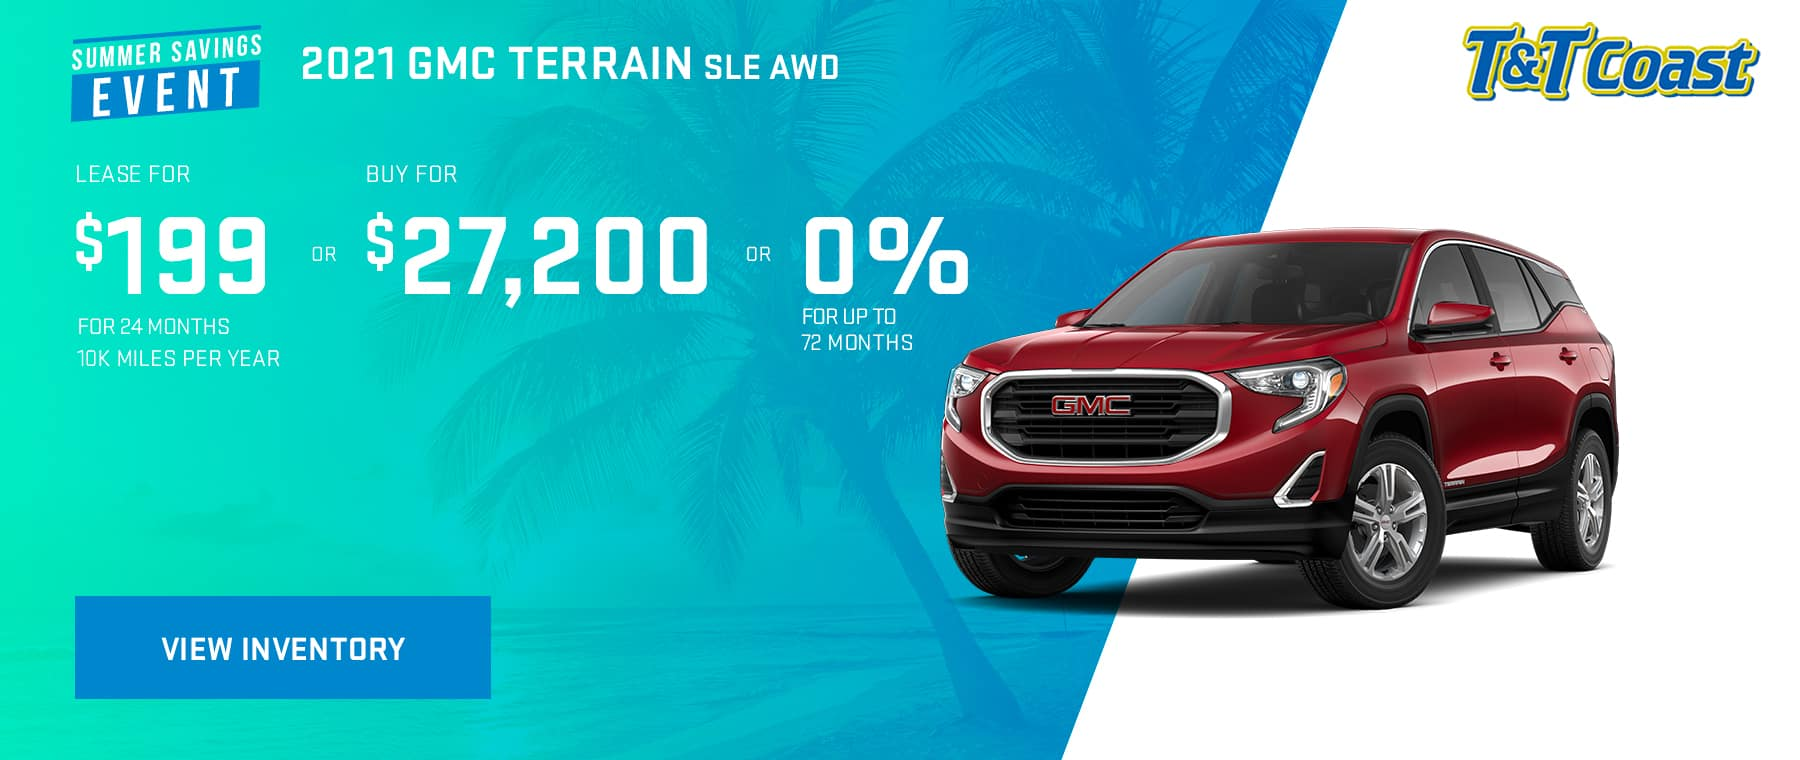 2021 GMC Terrain SLE FWD MSRP $31,880 $199/MONTH LEASE!* For 24 Months /10K Miles/Year OR BUY FOR $27,200 OR 0% for up to 72 months.